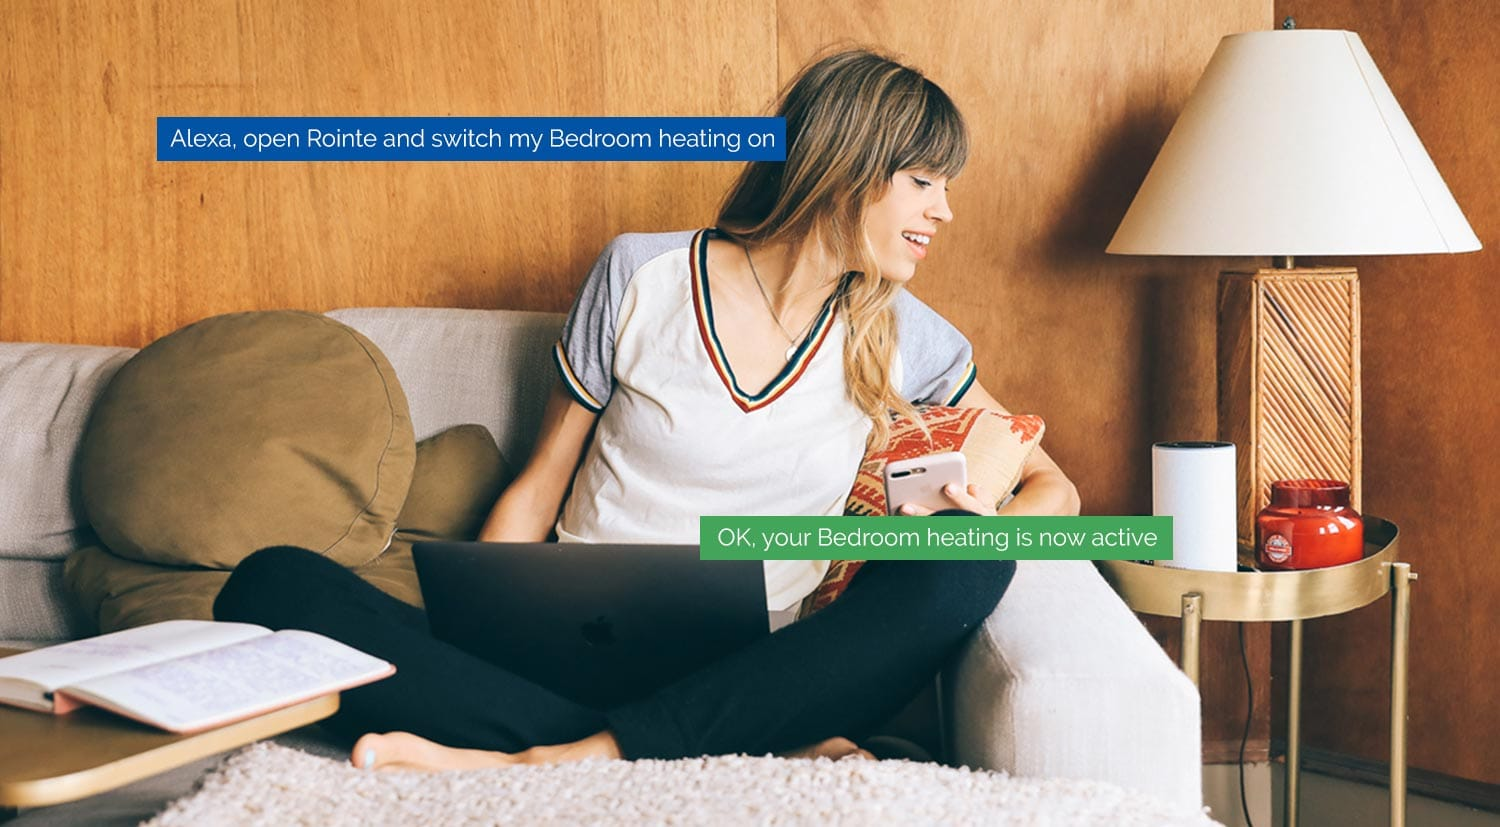 Woman on sofa instructing Amazon Alexa to switch on her Rointe bedroom heating